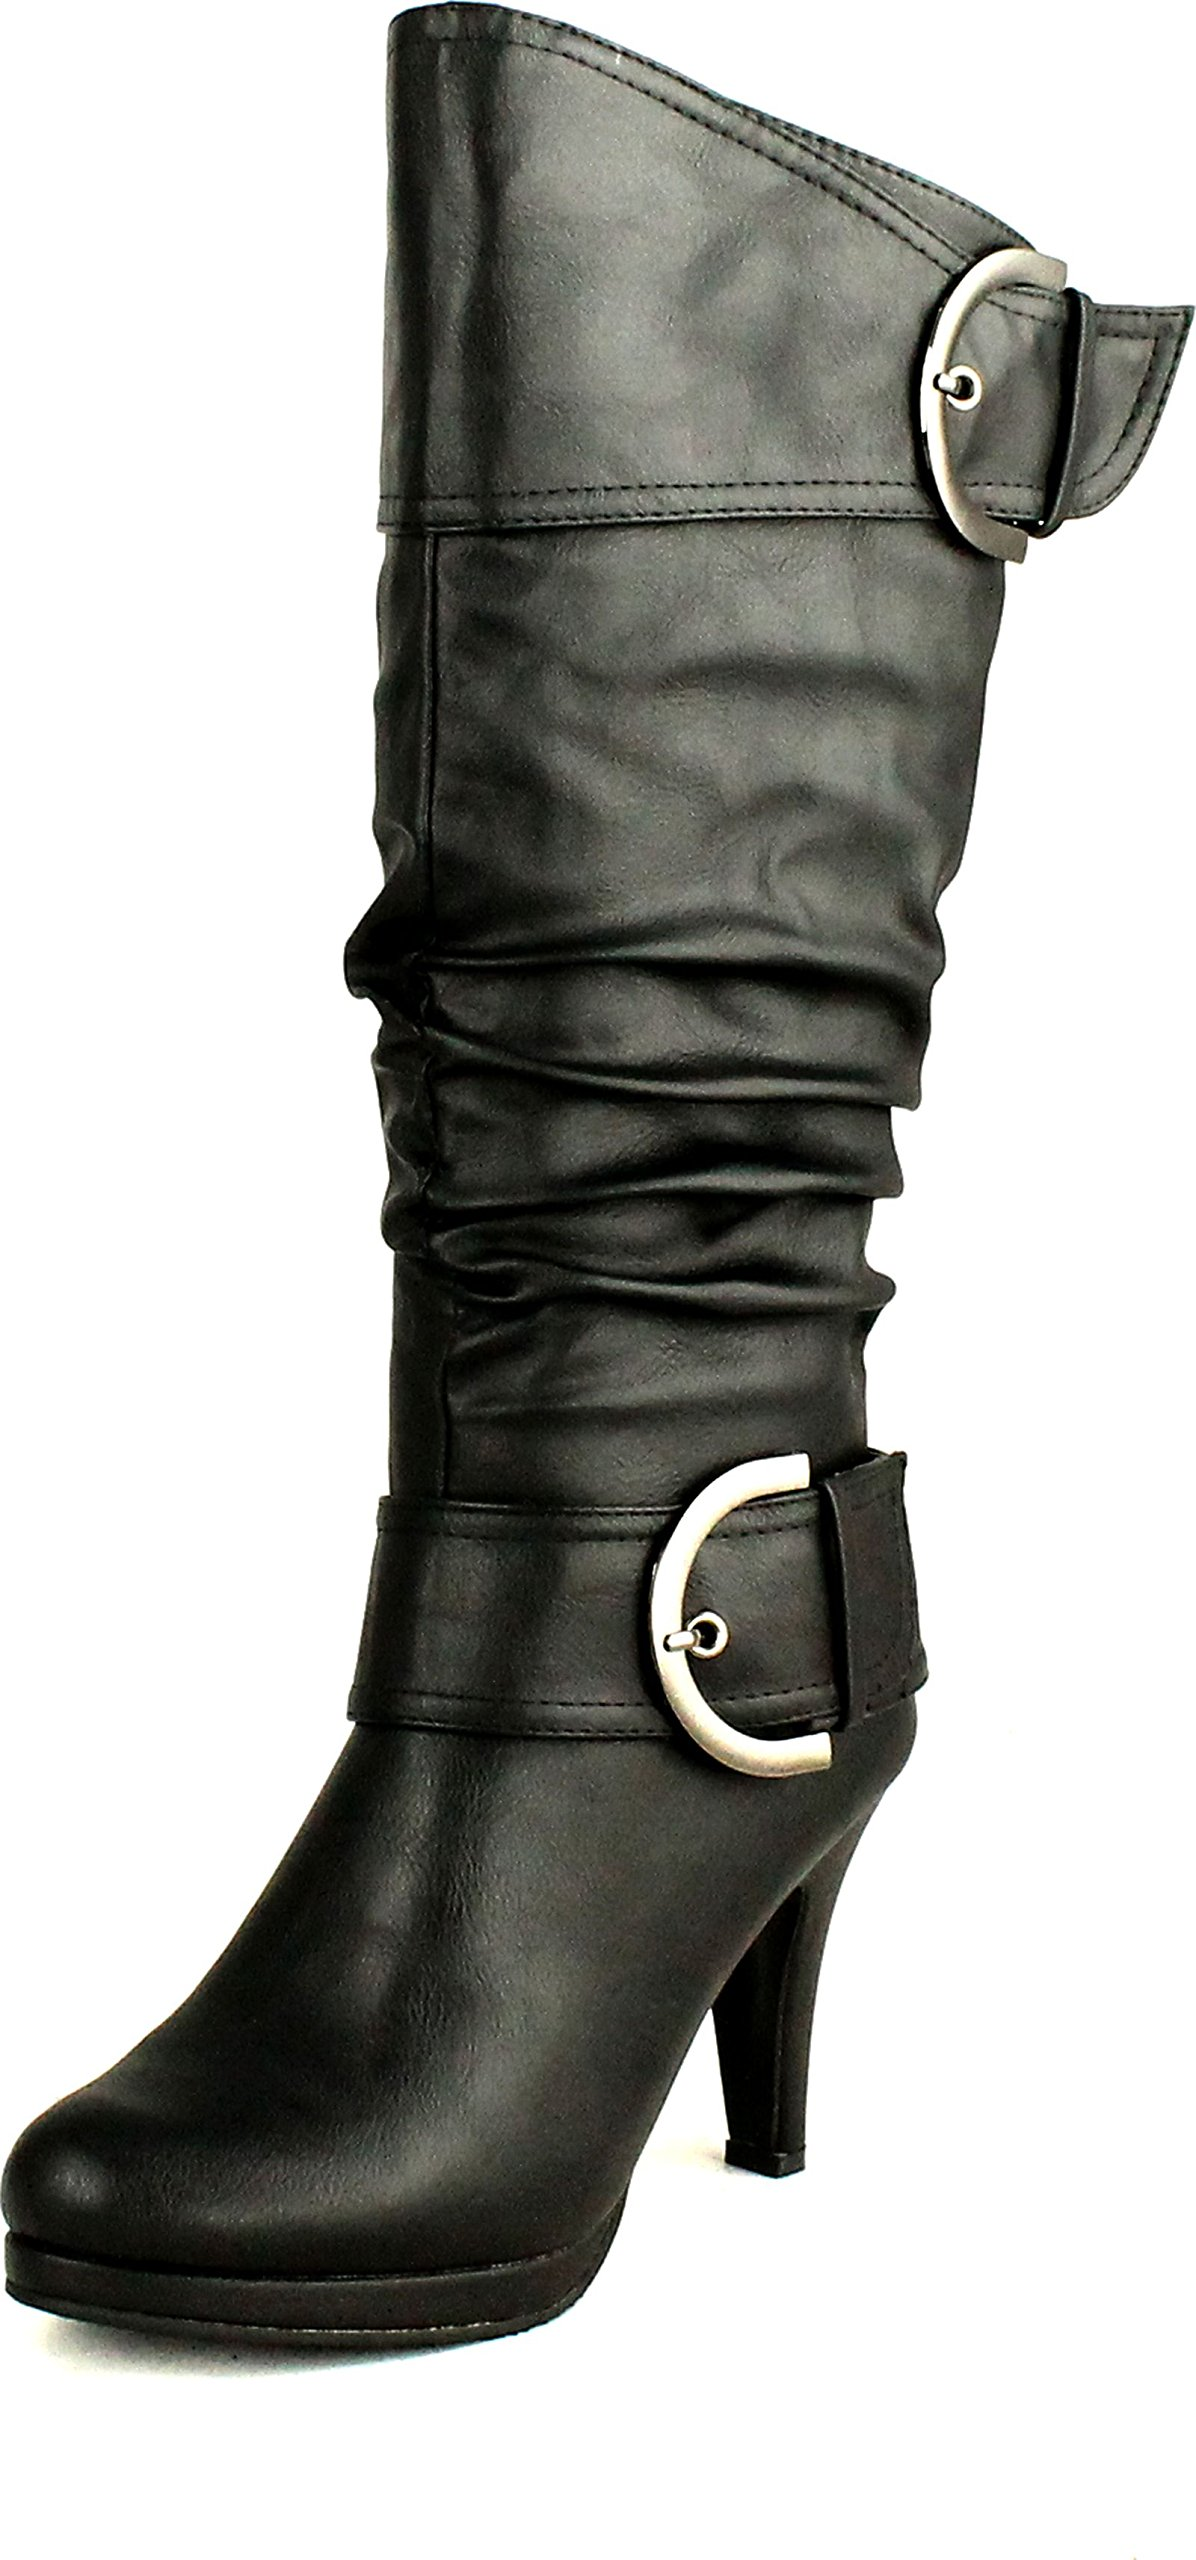 Top Moda Womens Page-22 Knee High Round Toe Buckle Slouched Low Heel Boots,Black,5